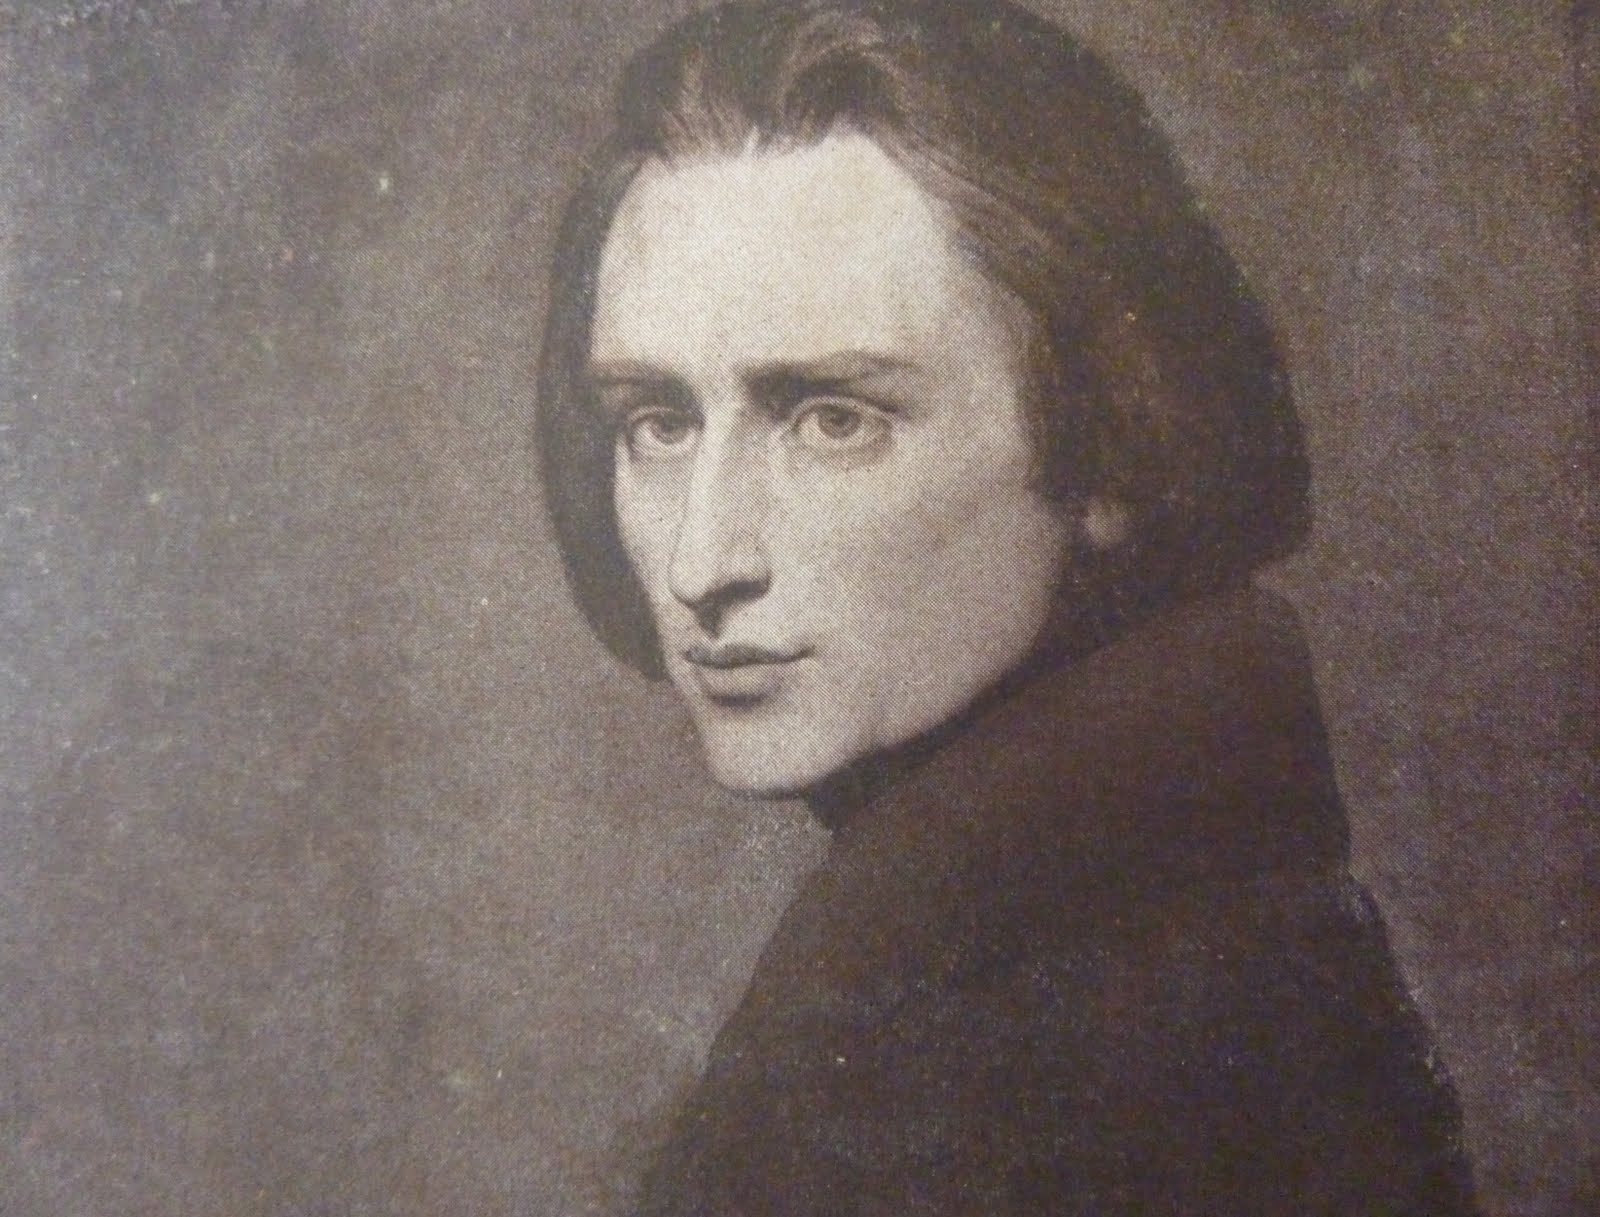 frank liszt essay Comparison of chopin and liszt etude this essay comparison of chopin and liszt etude and other 64,000+ term papers, college essay examples and free essays are available now on reviewessayscom  one etude written by franz liszt is his etude no 3 also known as la campanella.